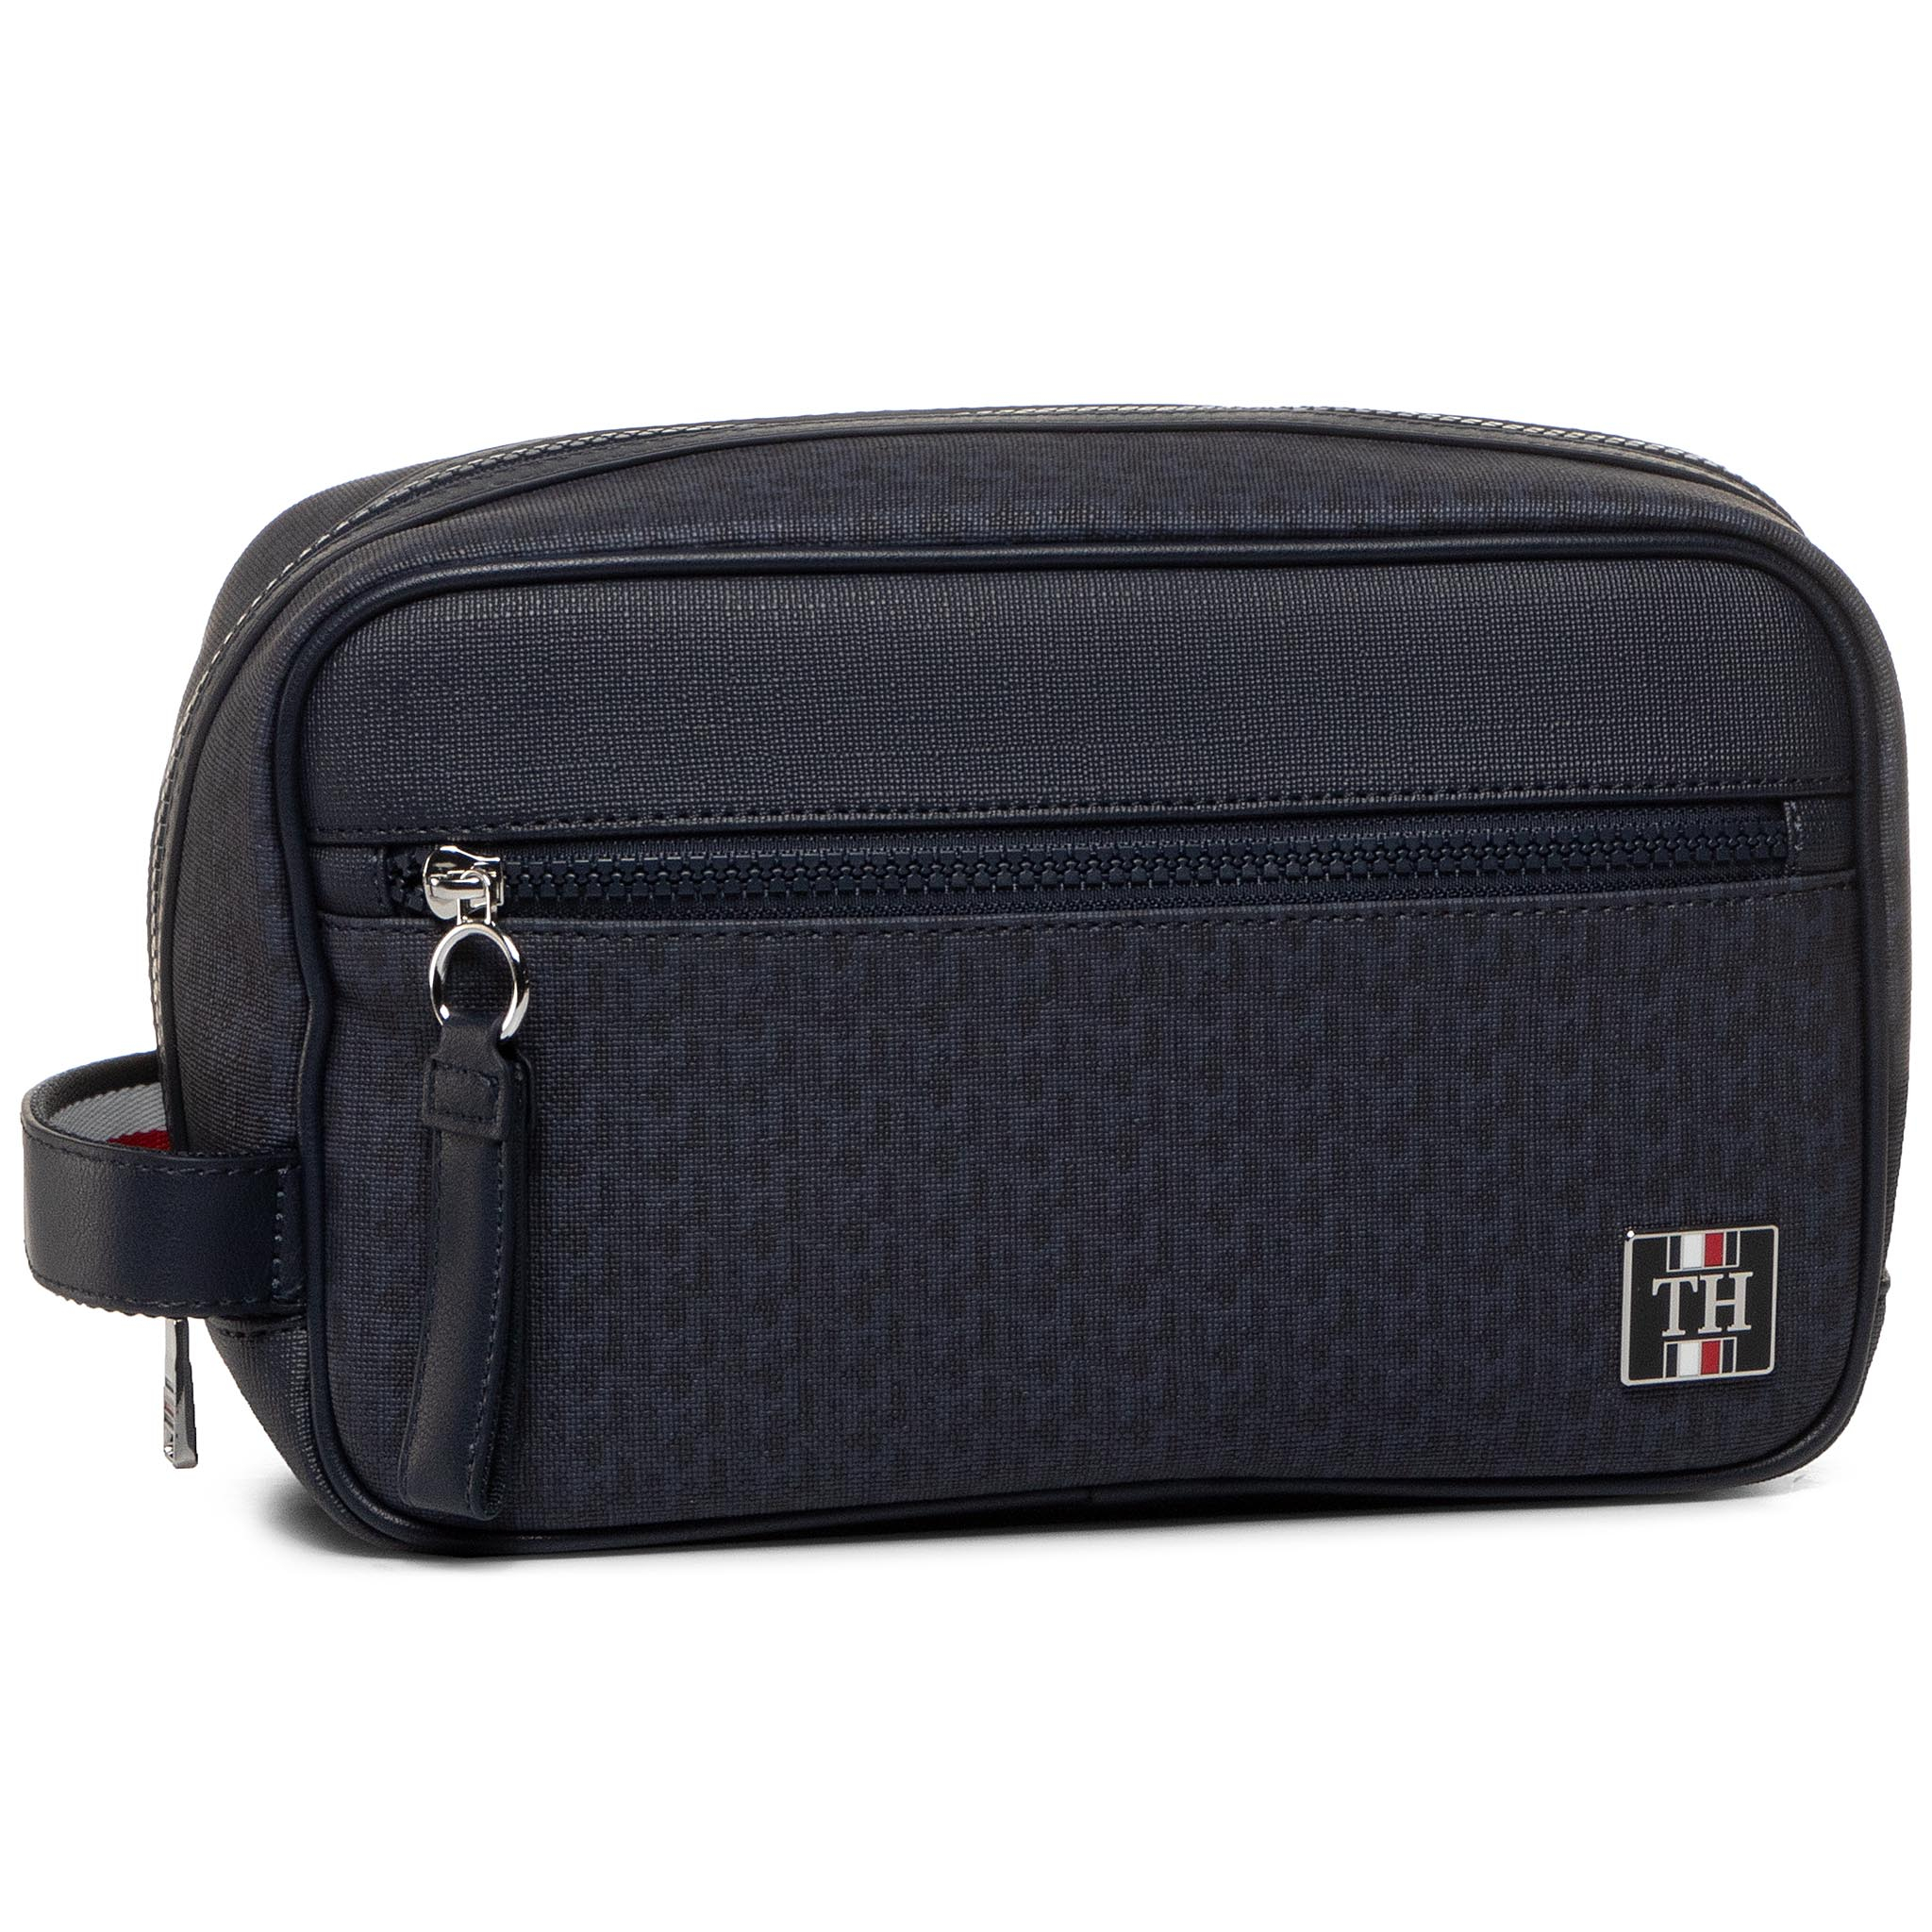 Geantă Pentru Cosmetice Tommy Hilfiger - Coated Canvas Washbag Am0am05659 0gy imagine epantofi.ro 2021